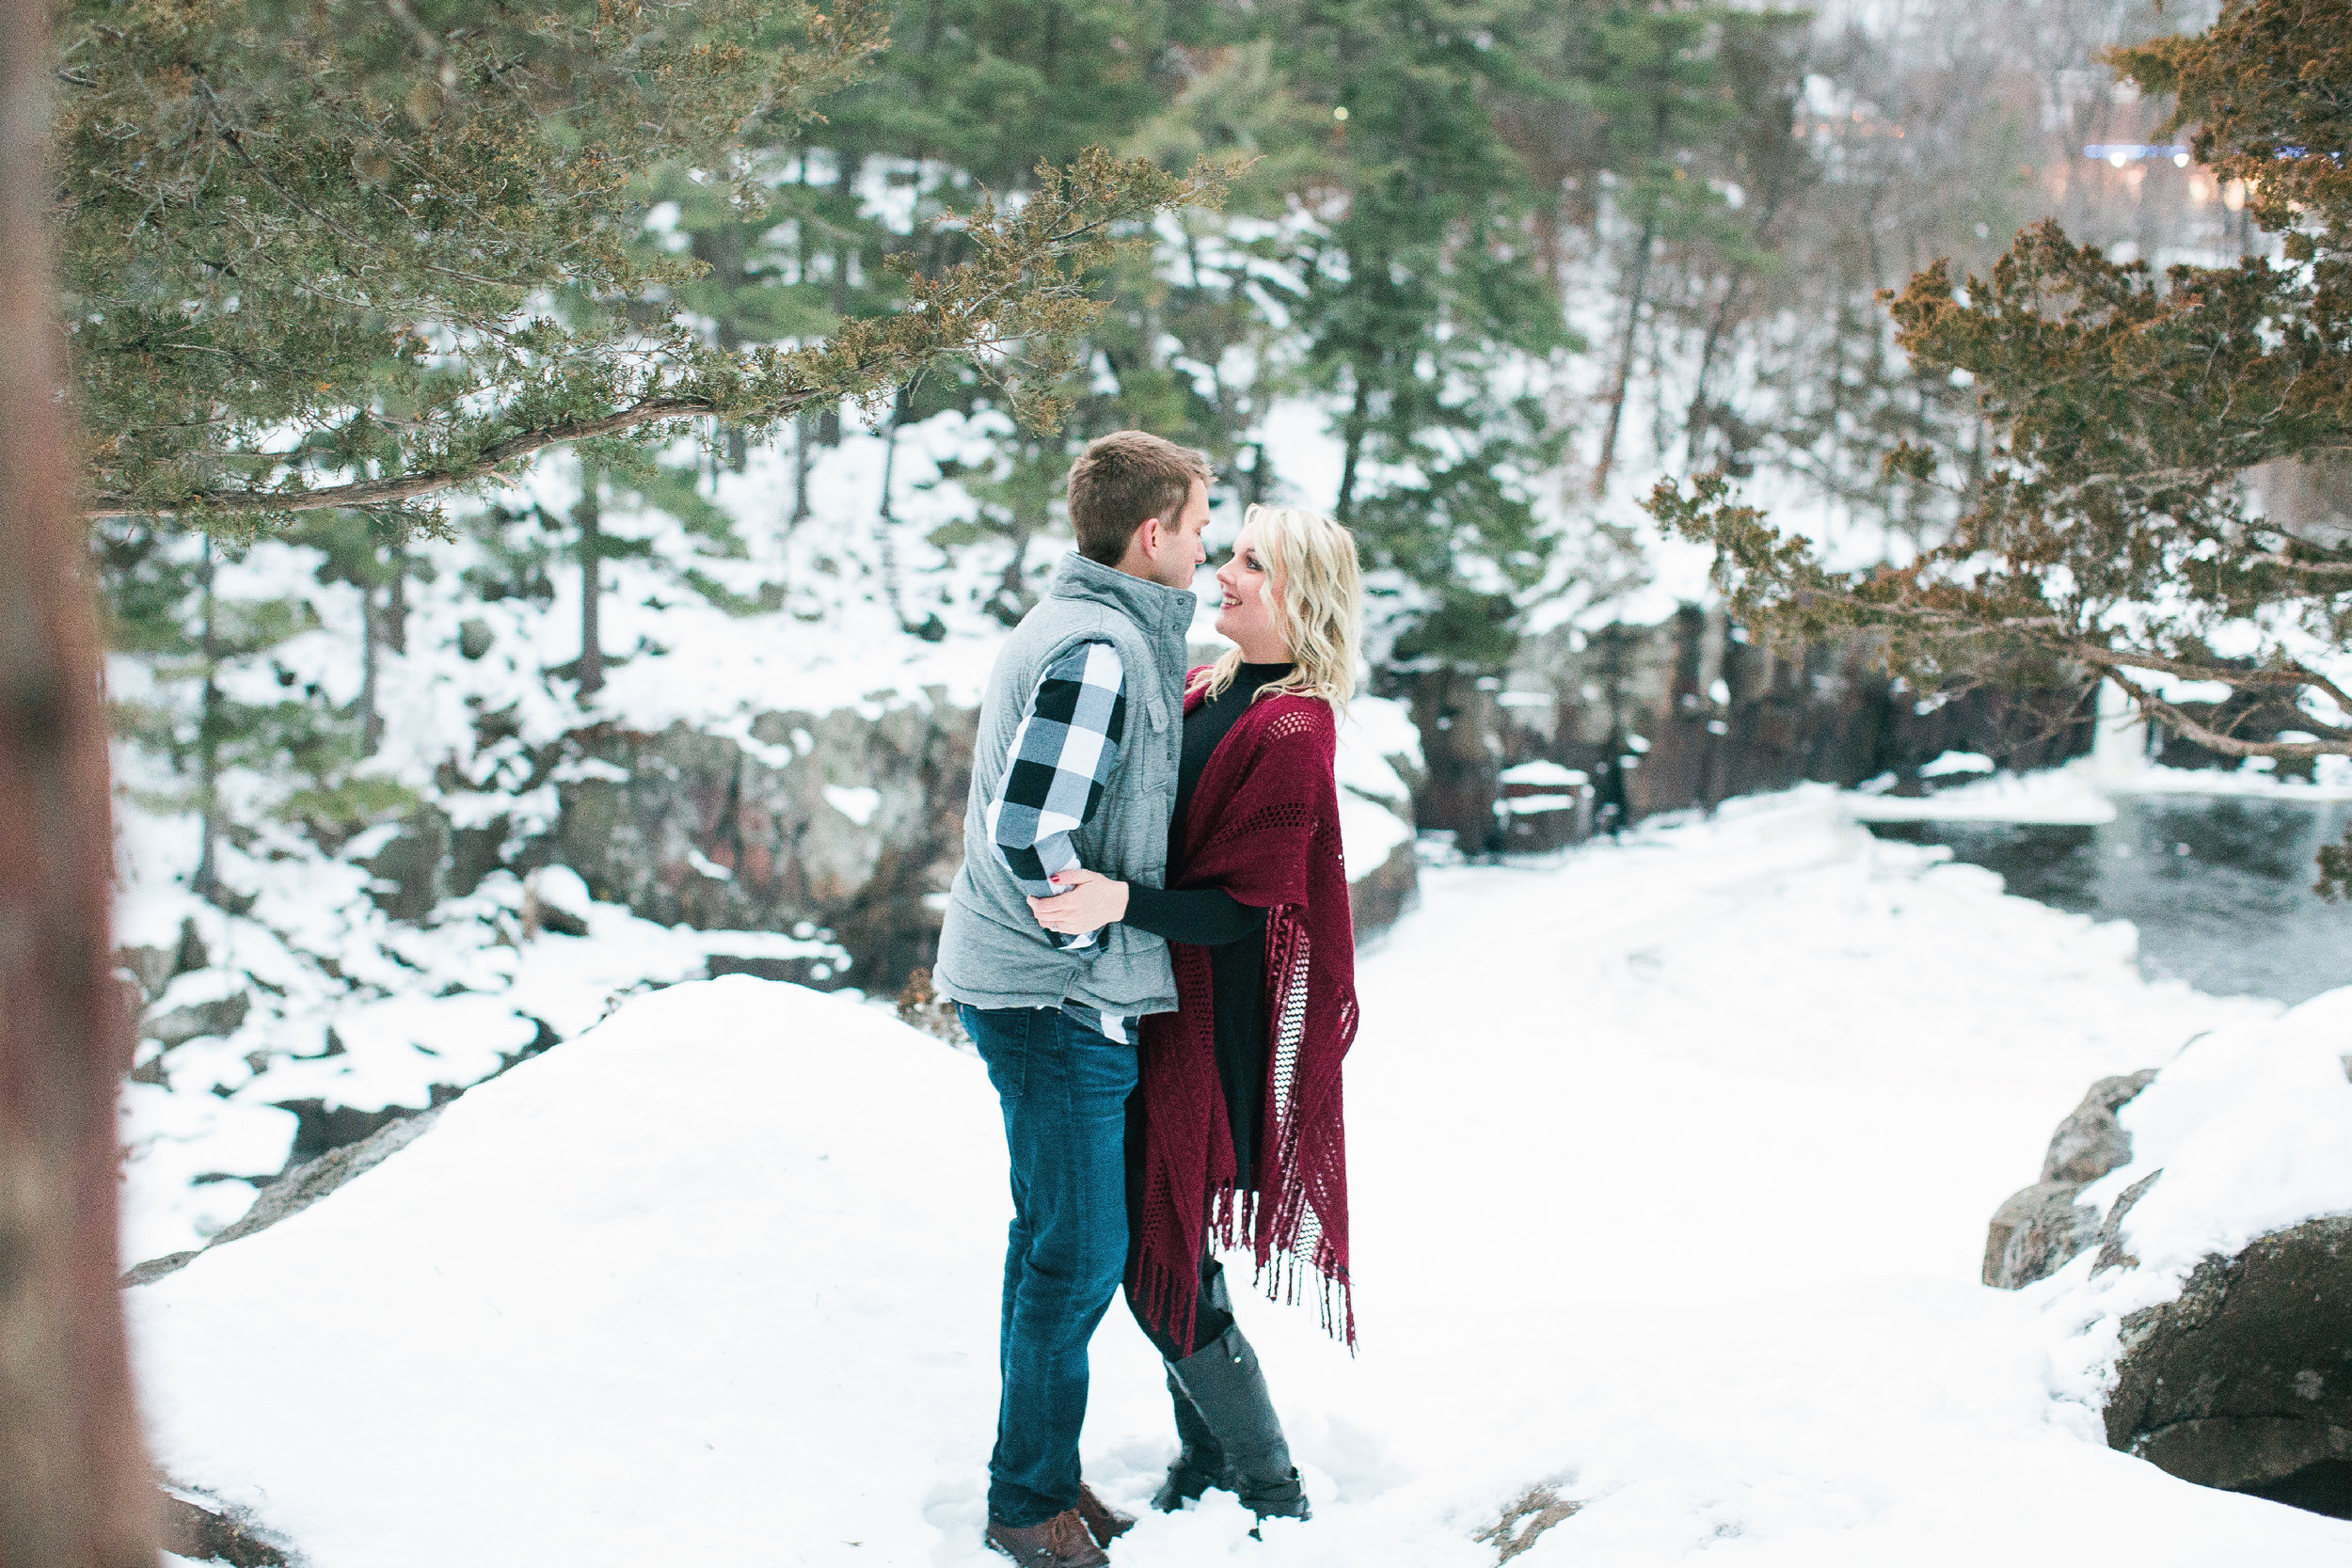 Snowy Minnesota Taylors Falls winter engagement photos on bluff overlooking river and woods in burgundy shawl, plaid vest